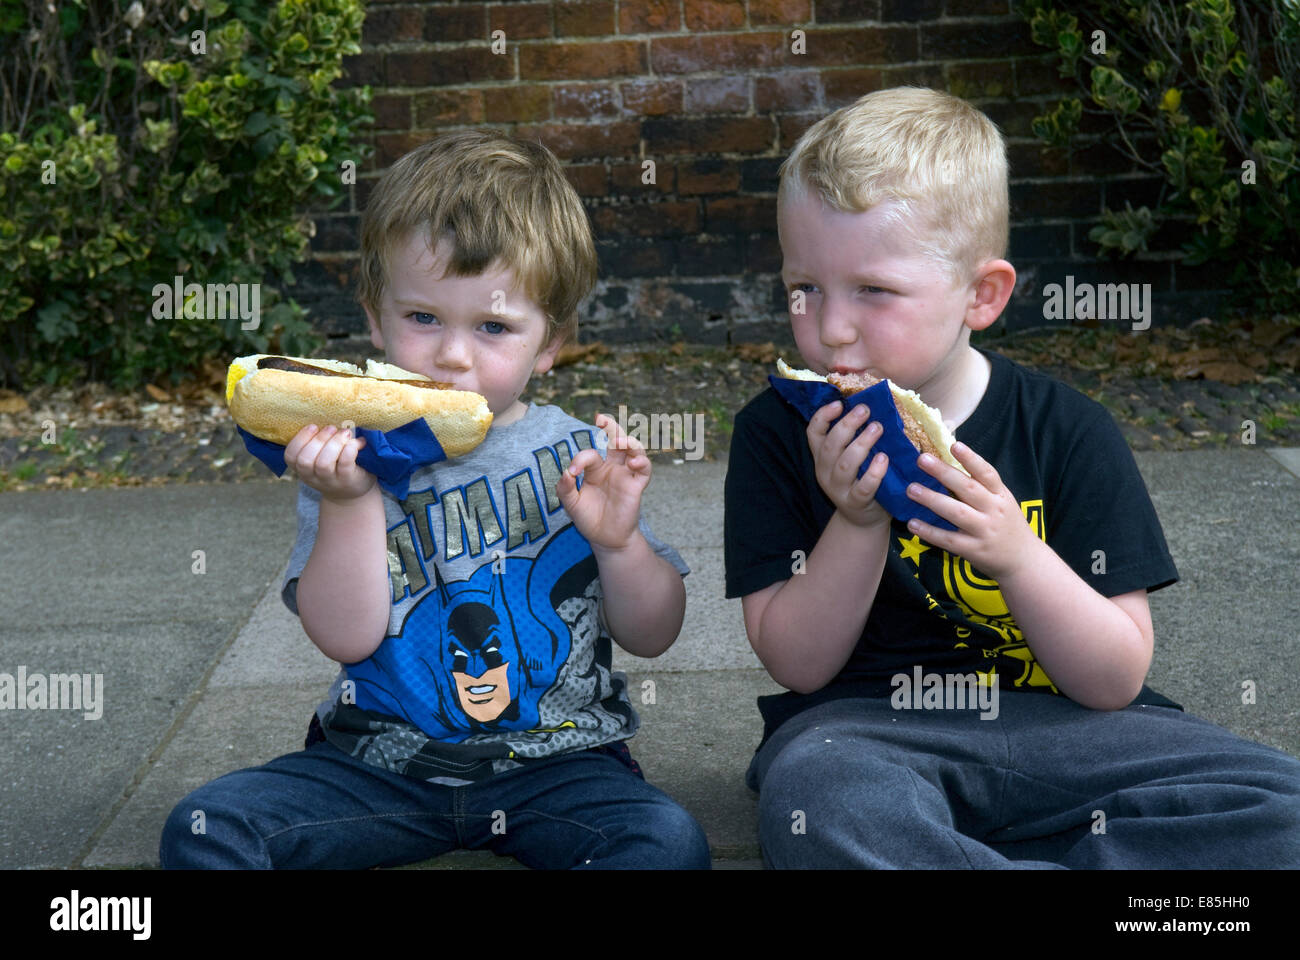 2 youngsters eating hot dogs at the Farnham Food Festival 2014, Castle Street, Farnham, Surrey, UK. - Stock Image